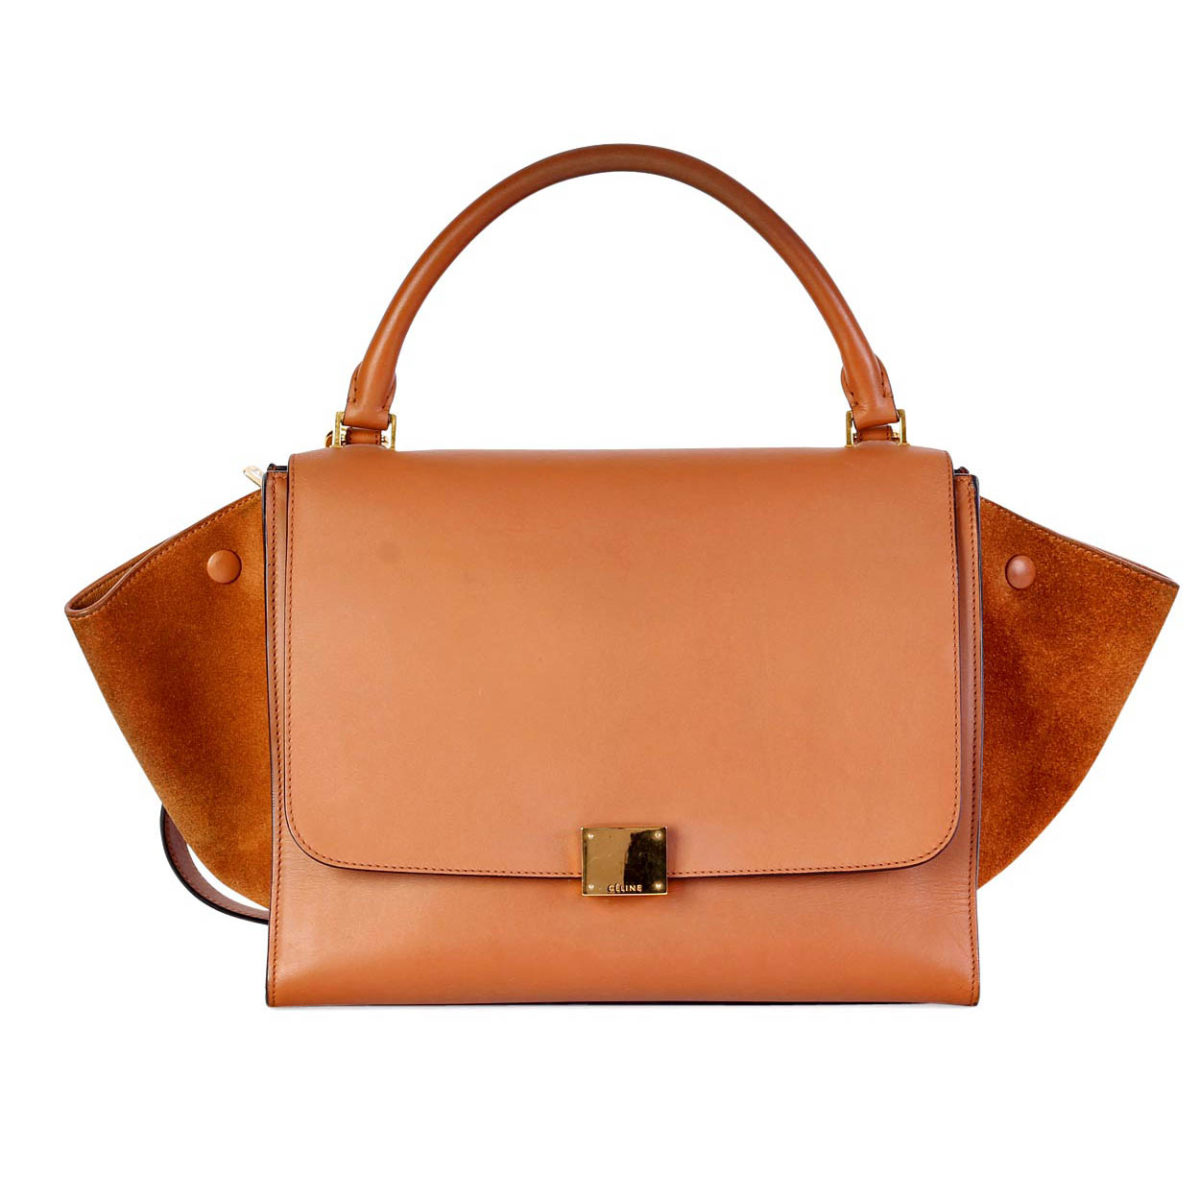 200c63b82d14 CELINE Medium Trapeze Bag Brown